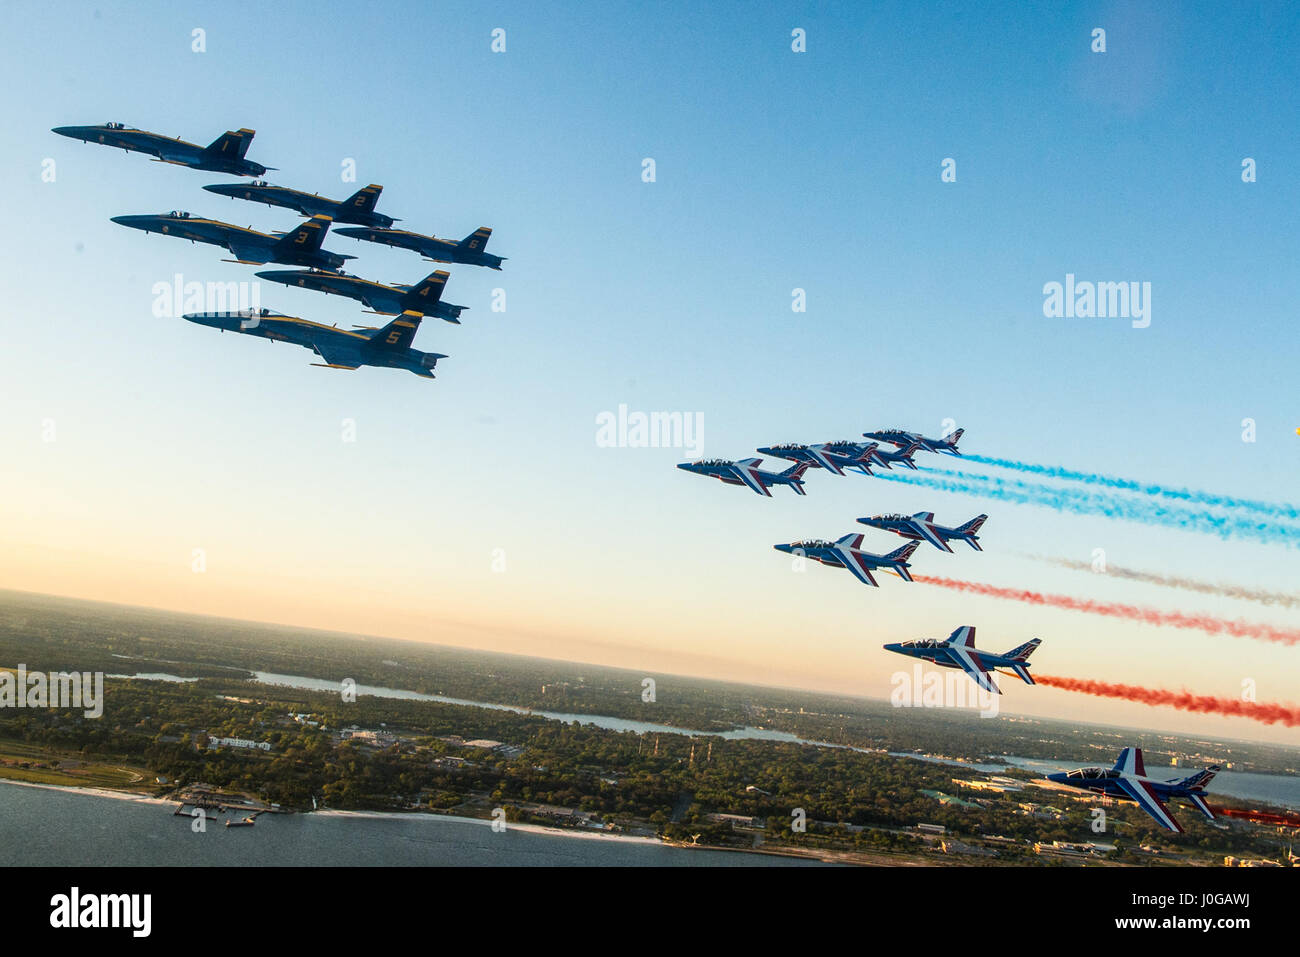 170409-N-ZG607-848 PENSACOLA, Fla. (Apr. 9, 2017) U.S. Navy Flight Demonstration Squadron, The Blue Angels fly in - Stock Image